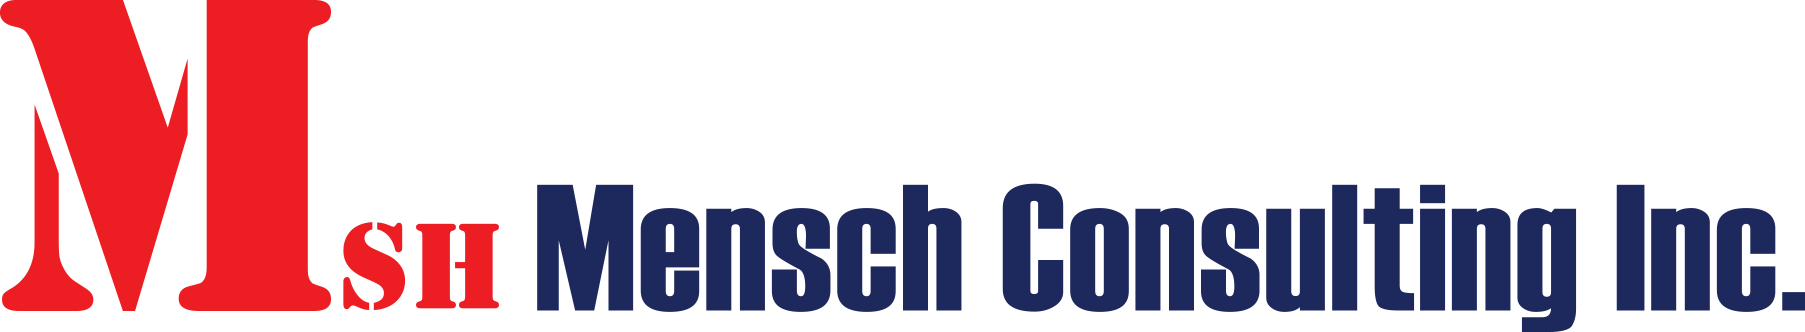 Mensch Consulting Inc.